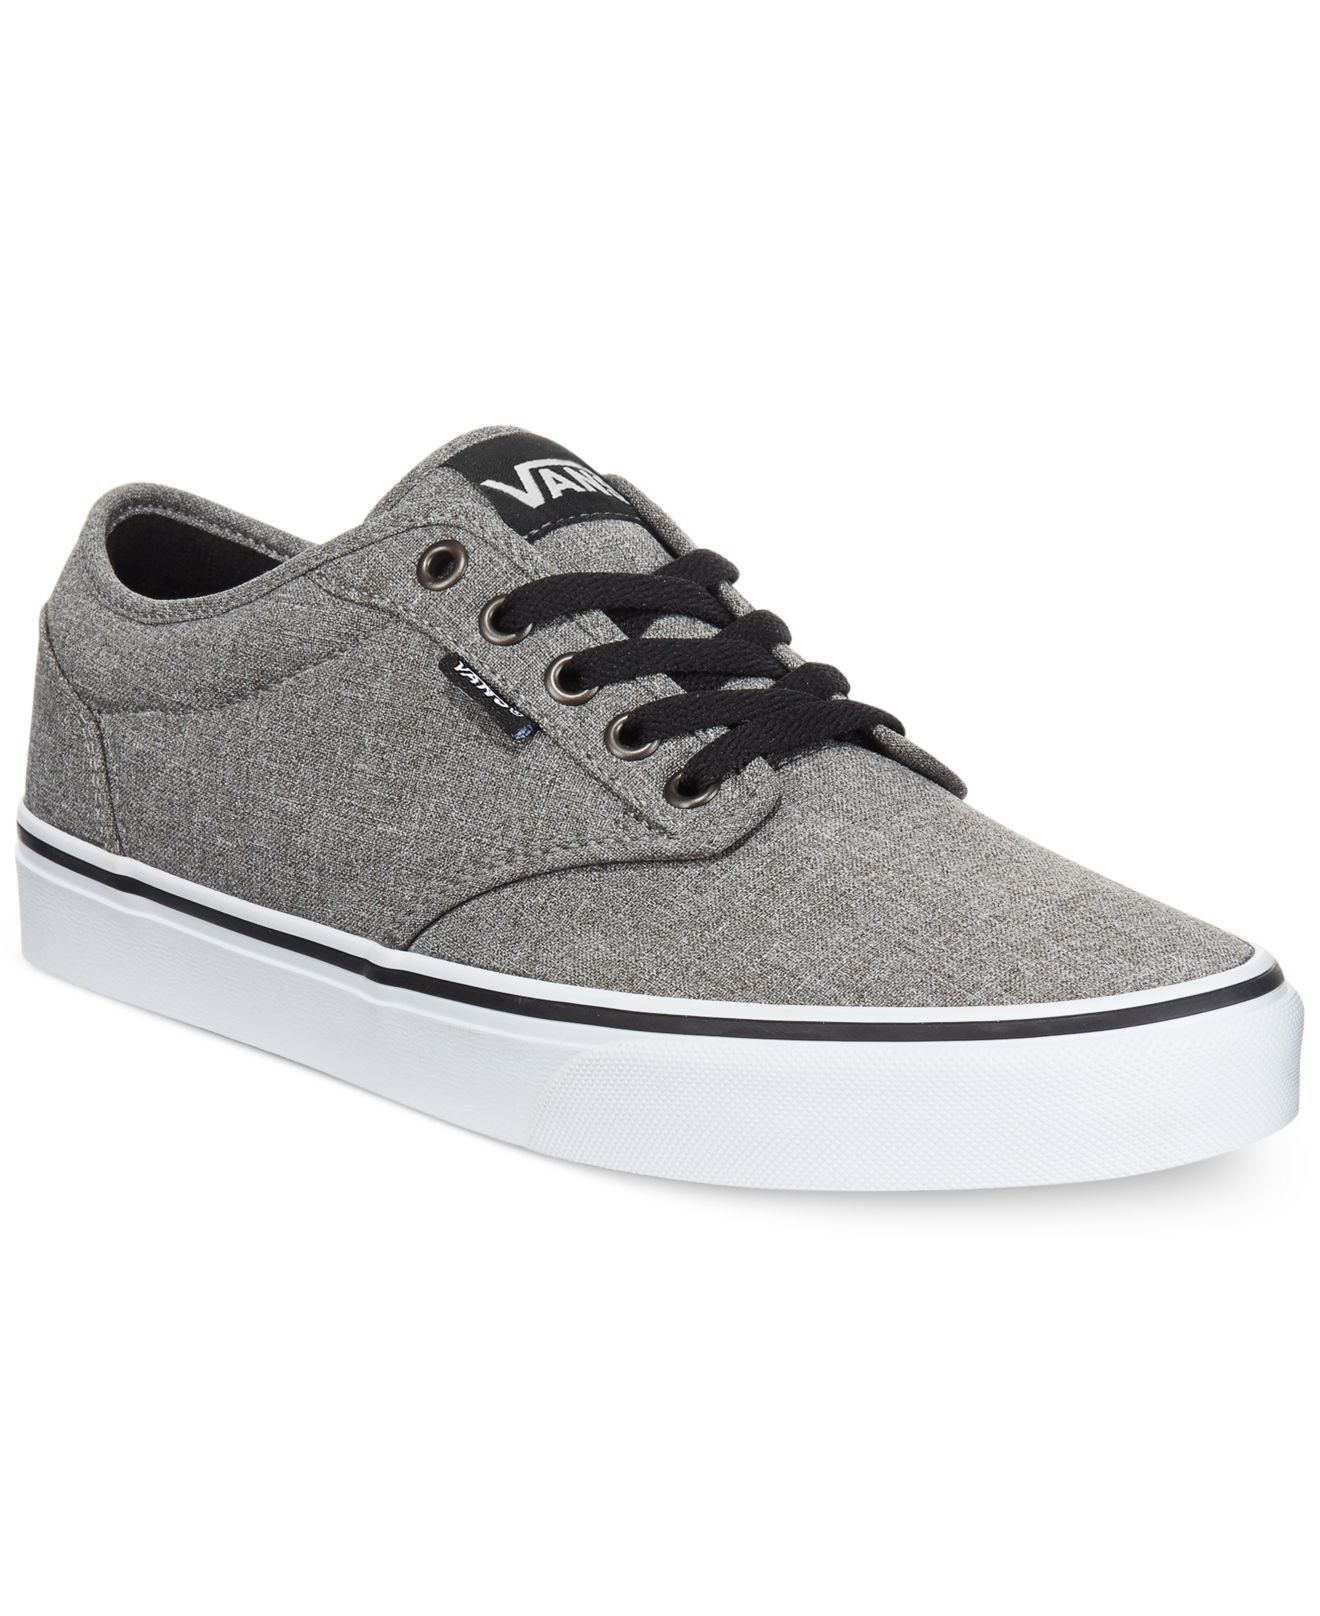 sale vans mens atwood grey